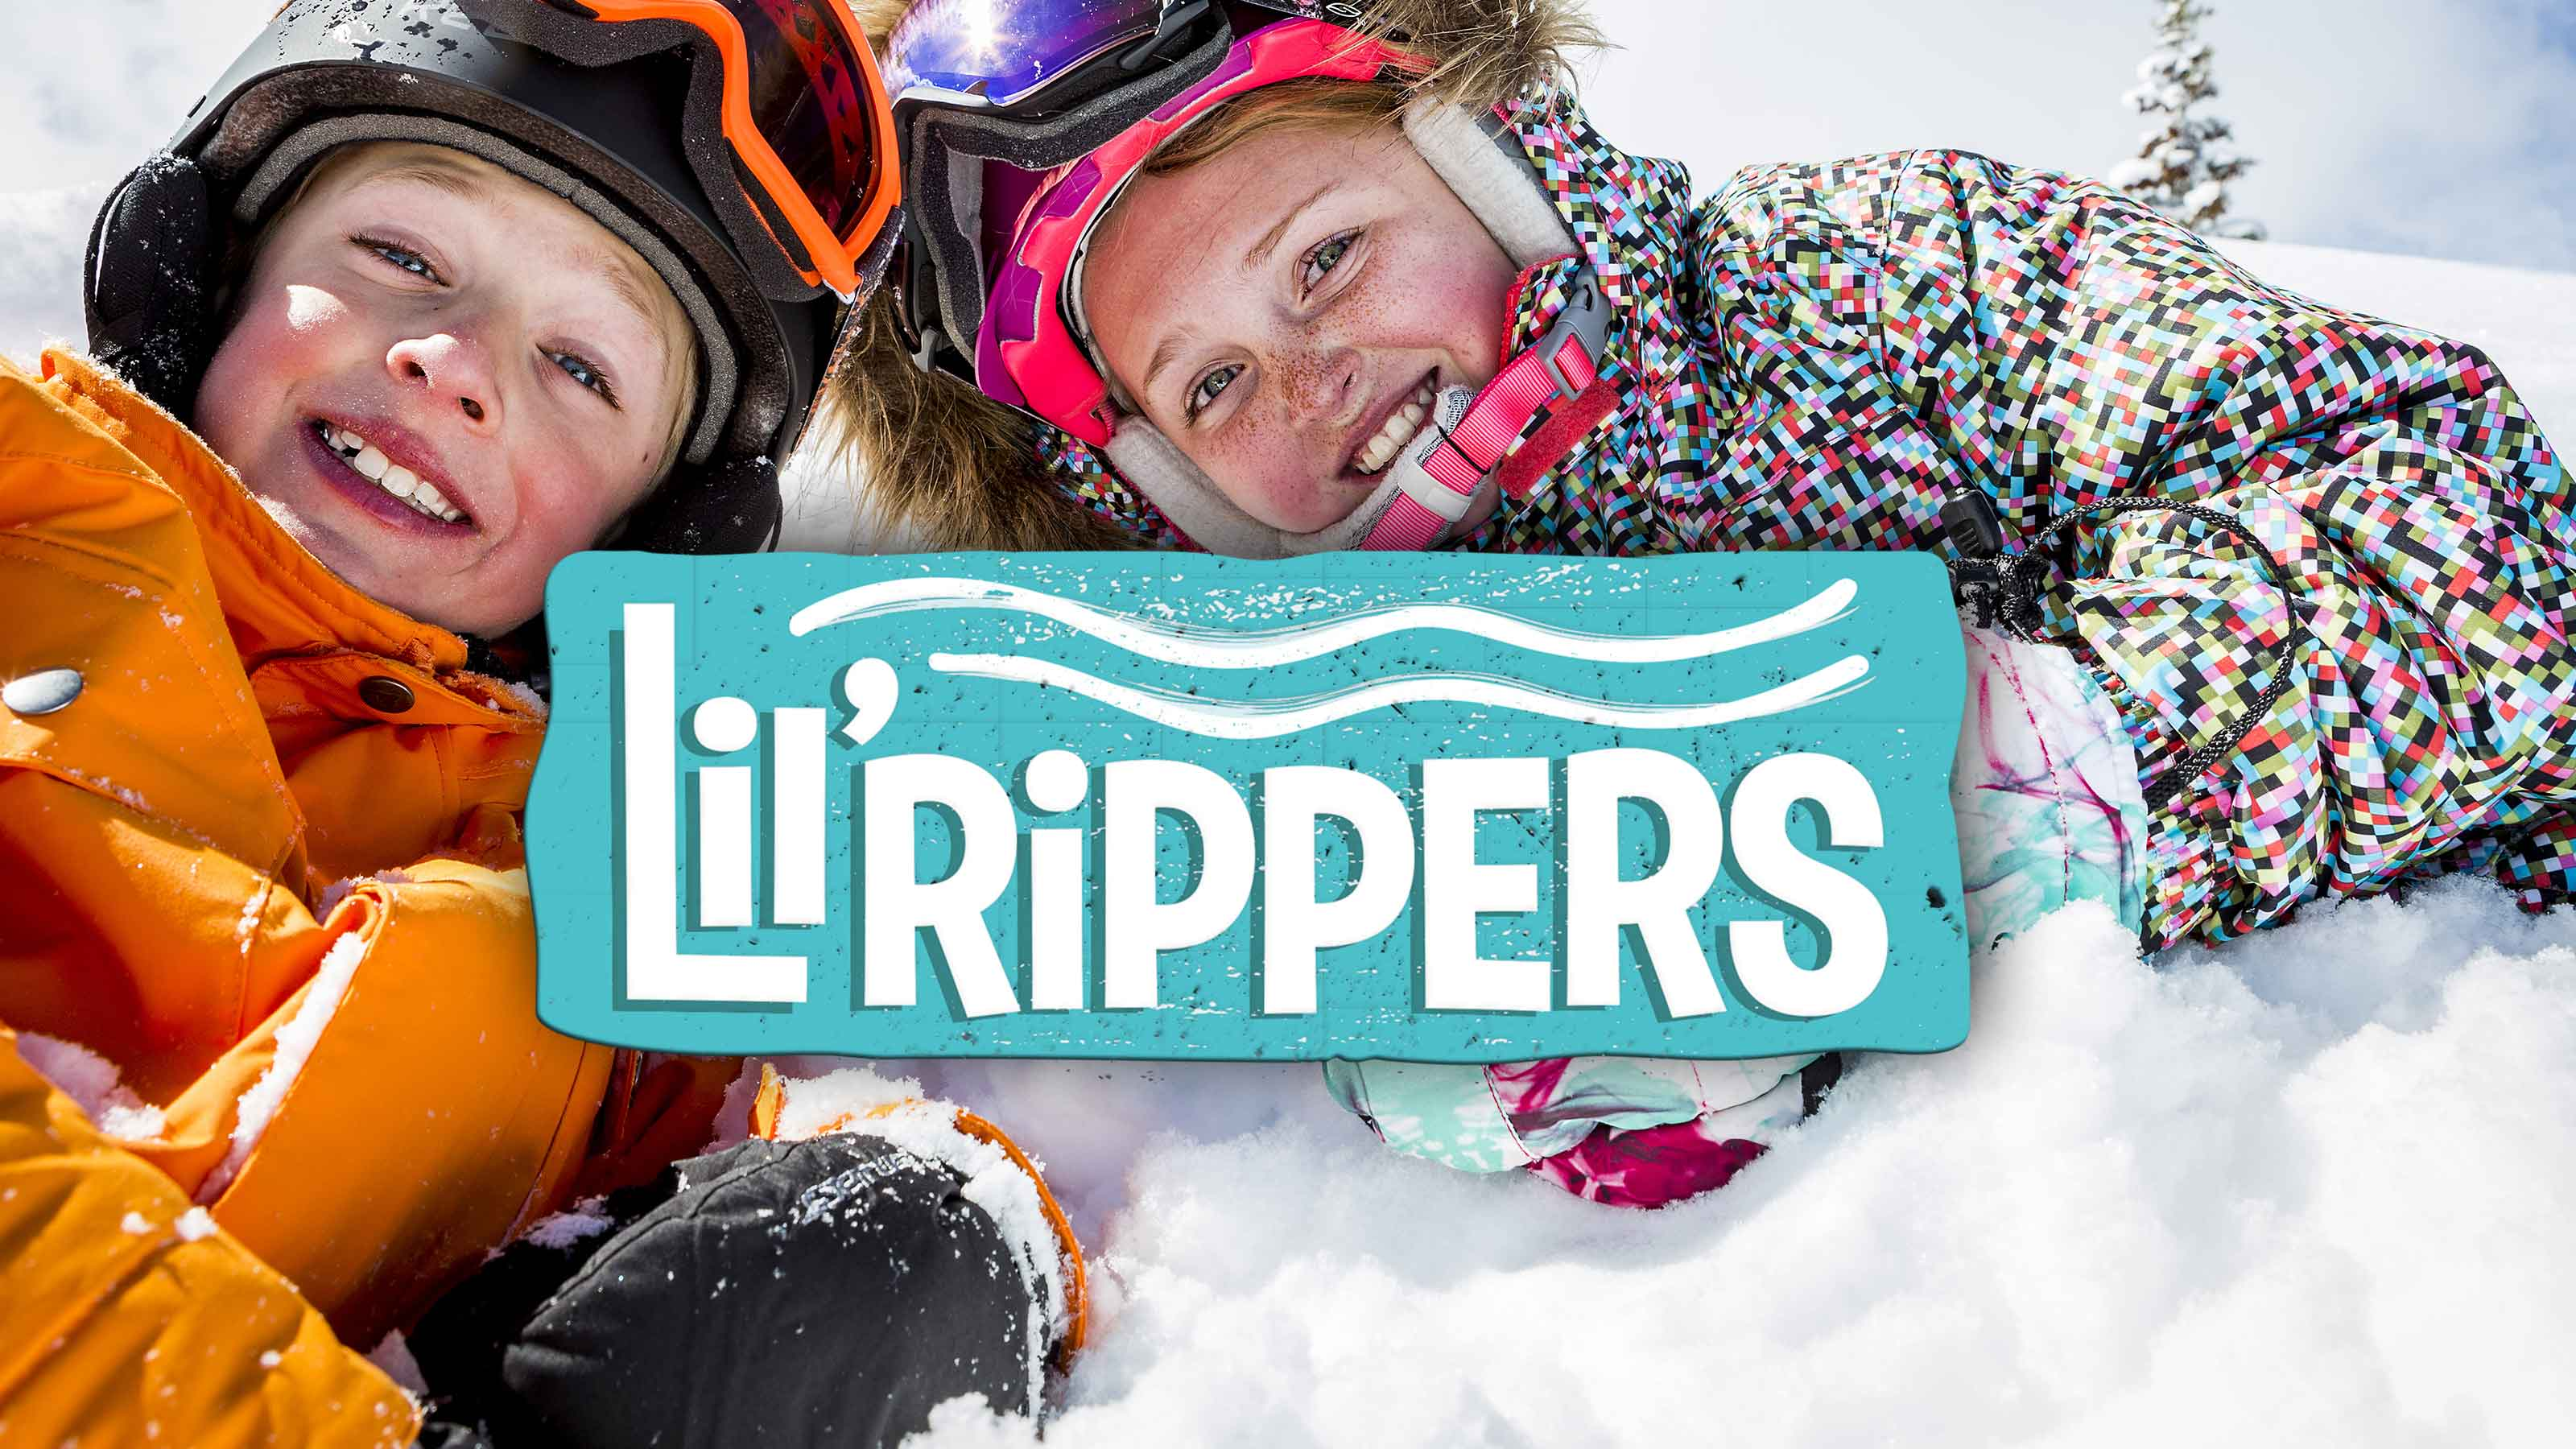 Lil' Rippers